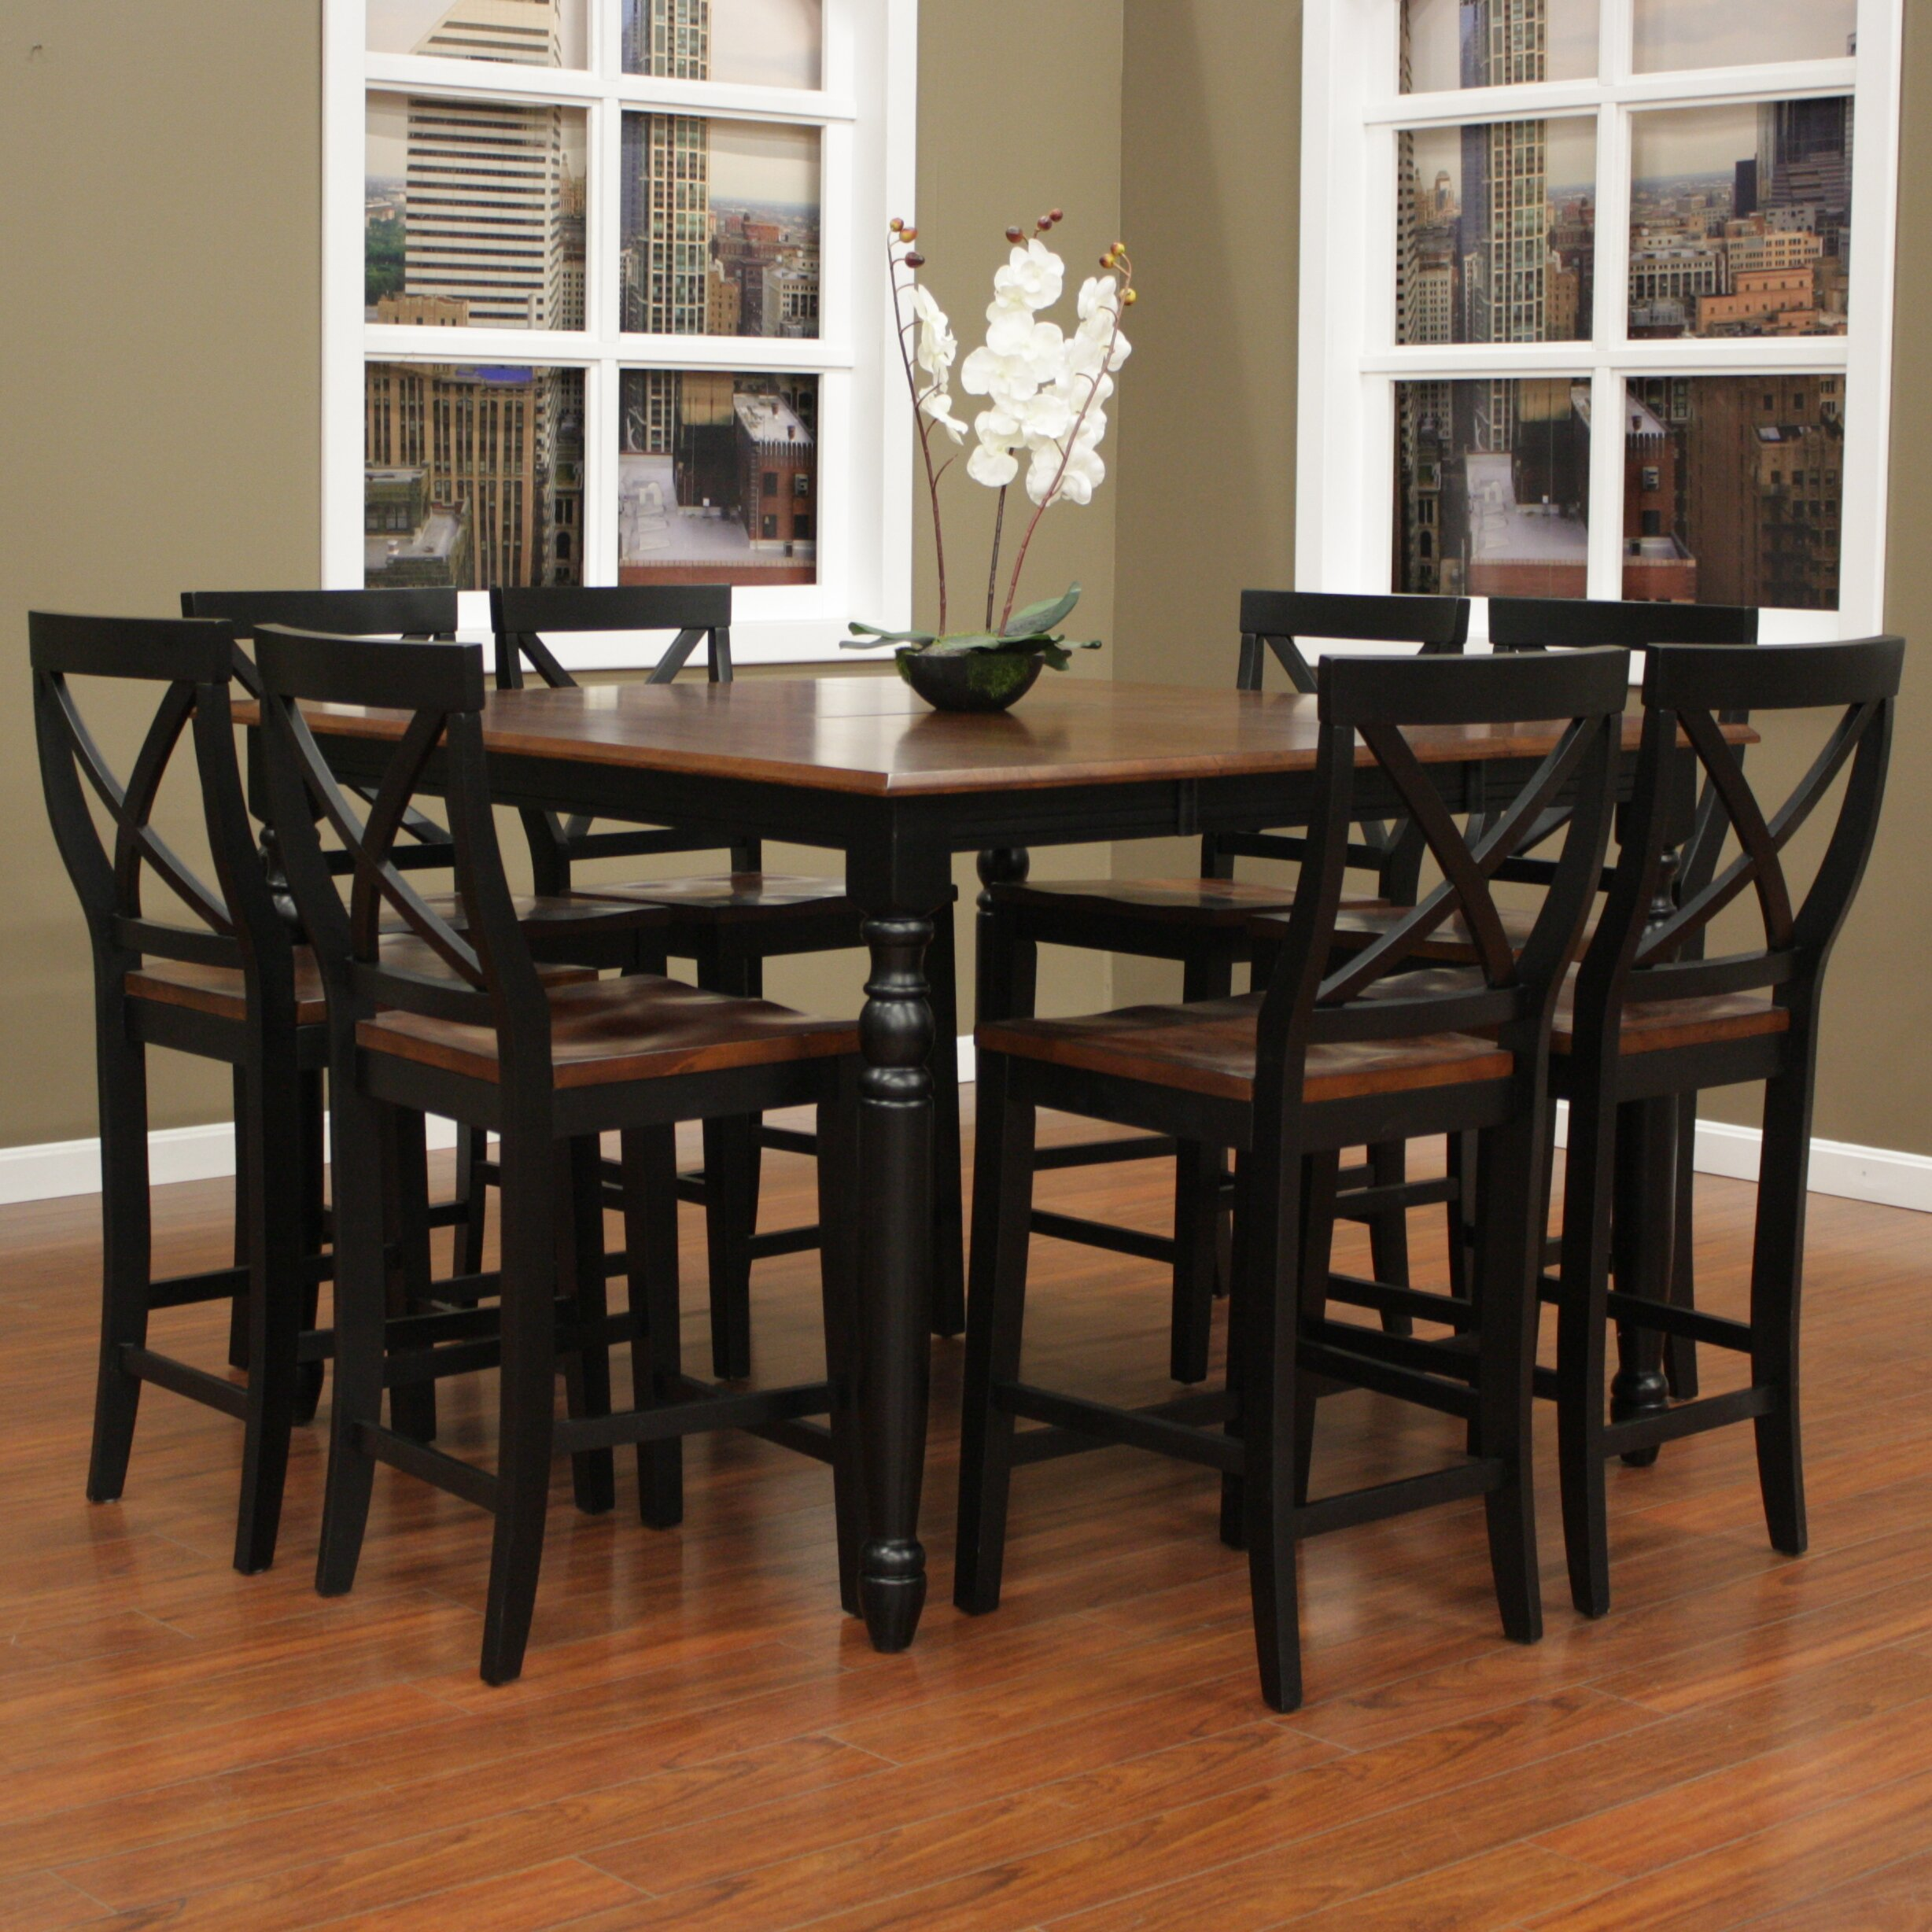 August grove deer lodge 9 piece counter height dining set for 9 piece dining room sets square